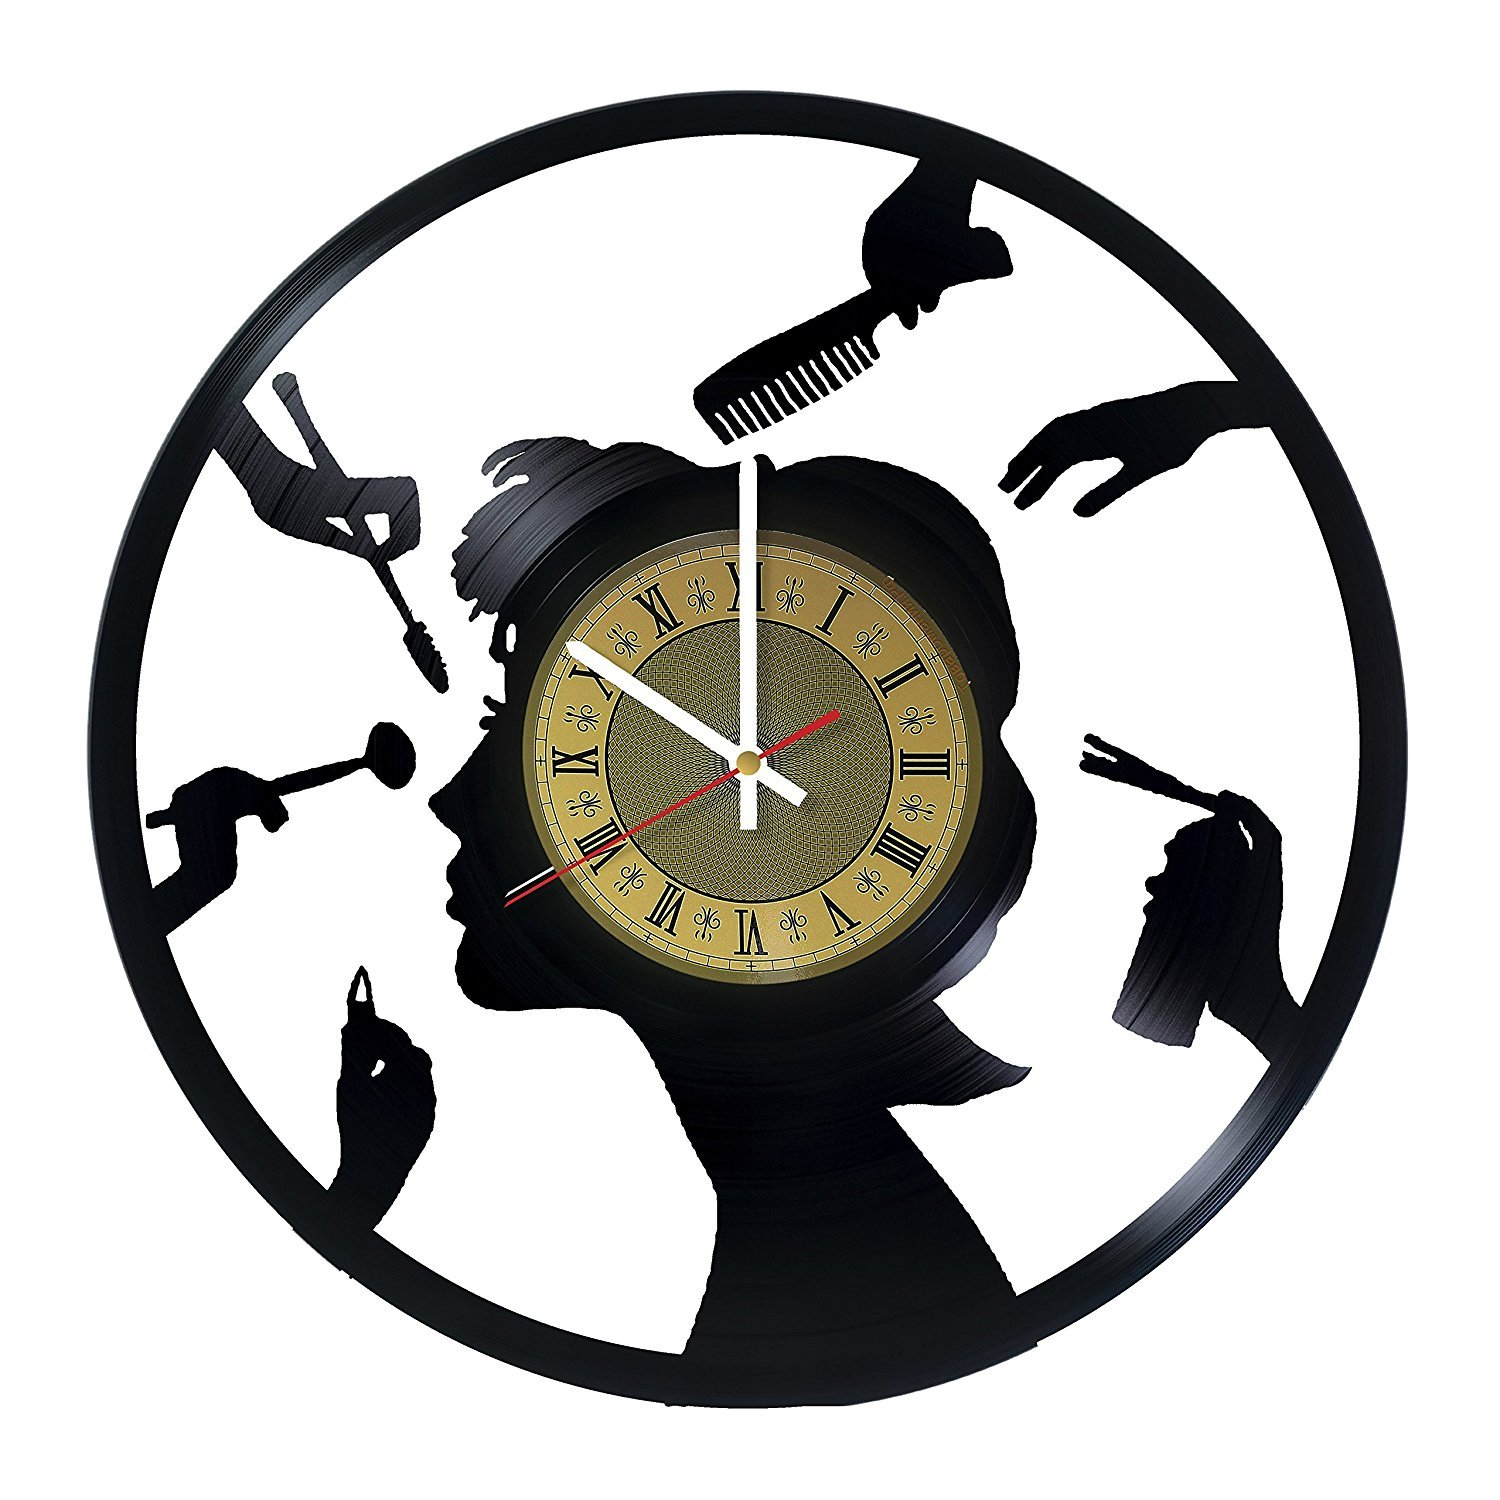 Amazon hairdressers equipment vinyl record wall clock gift amazon hairdressers equipment vinyl record wall clock gift idea for hairdressershair stylists barbers hair stylists barber shops and beauty amipublicfo Images